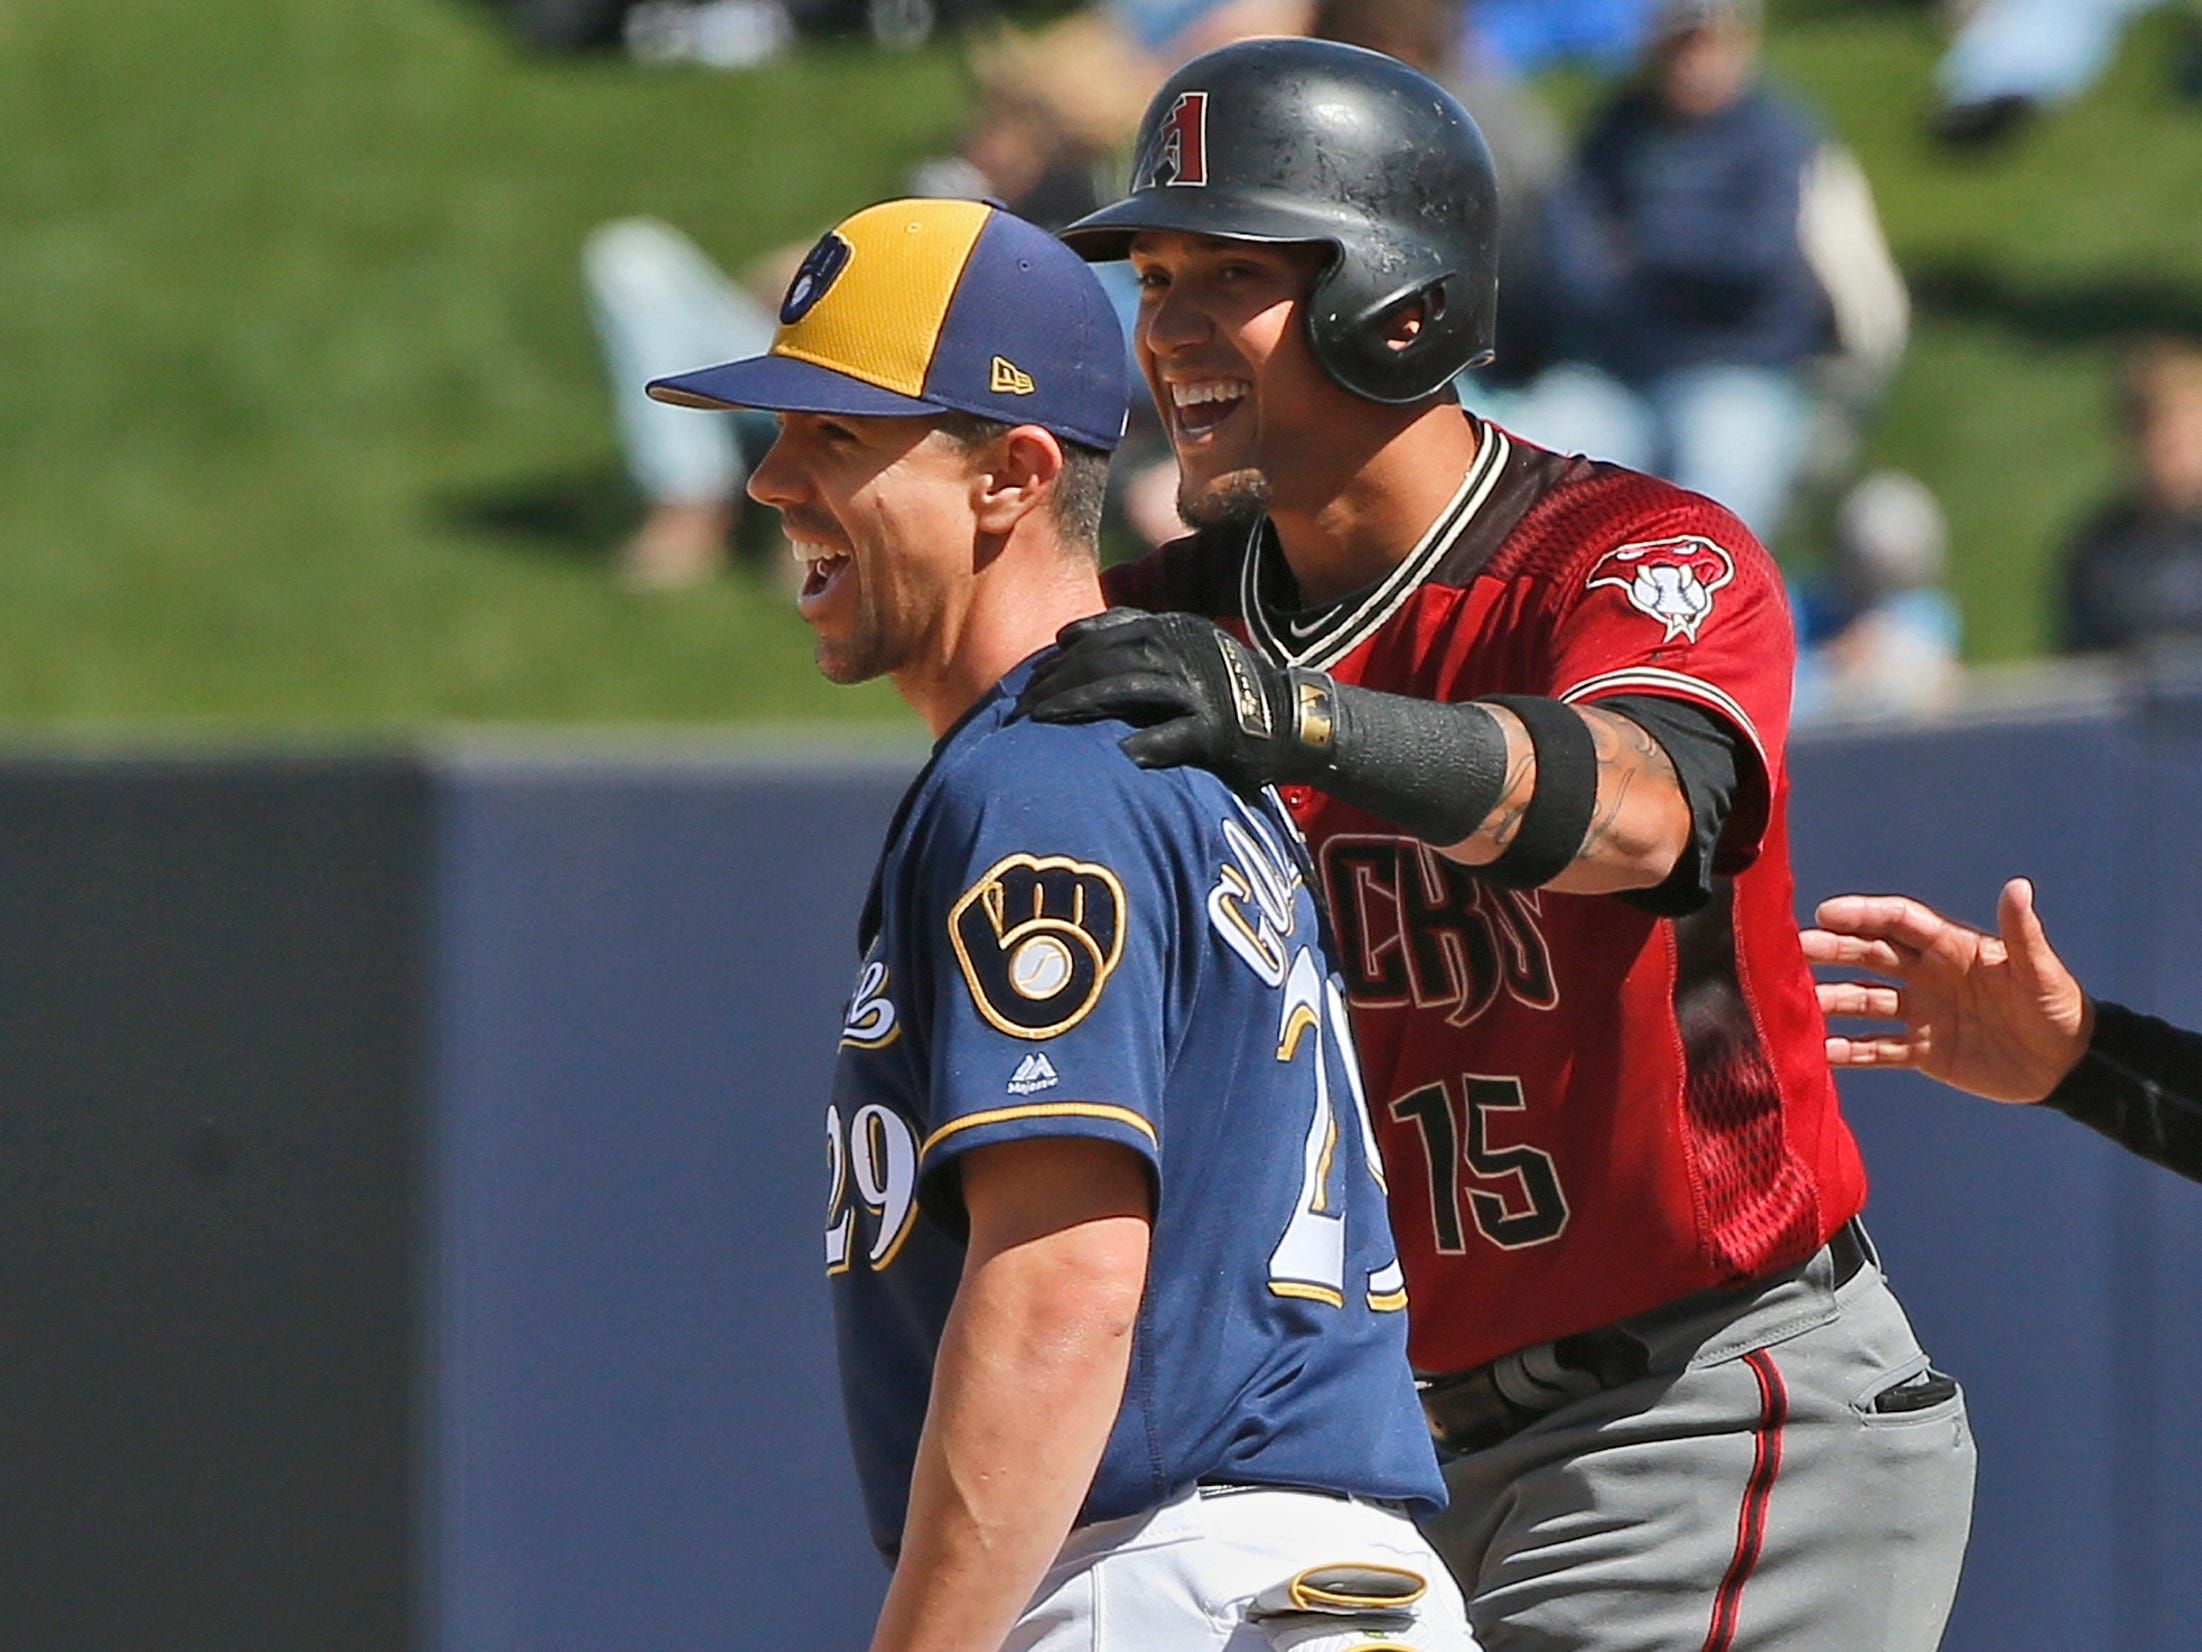 Arizona Diamondbacks' Ildemaro Vargas, right, laughs with Milwaukee Brewers' Tuffy Gosewisch, left, after reaching first base on a walk in the seventh inning of a spring training baseball game Friday, March 8, 2019, in Phoenix.